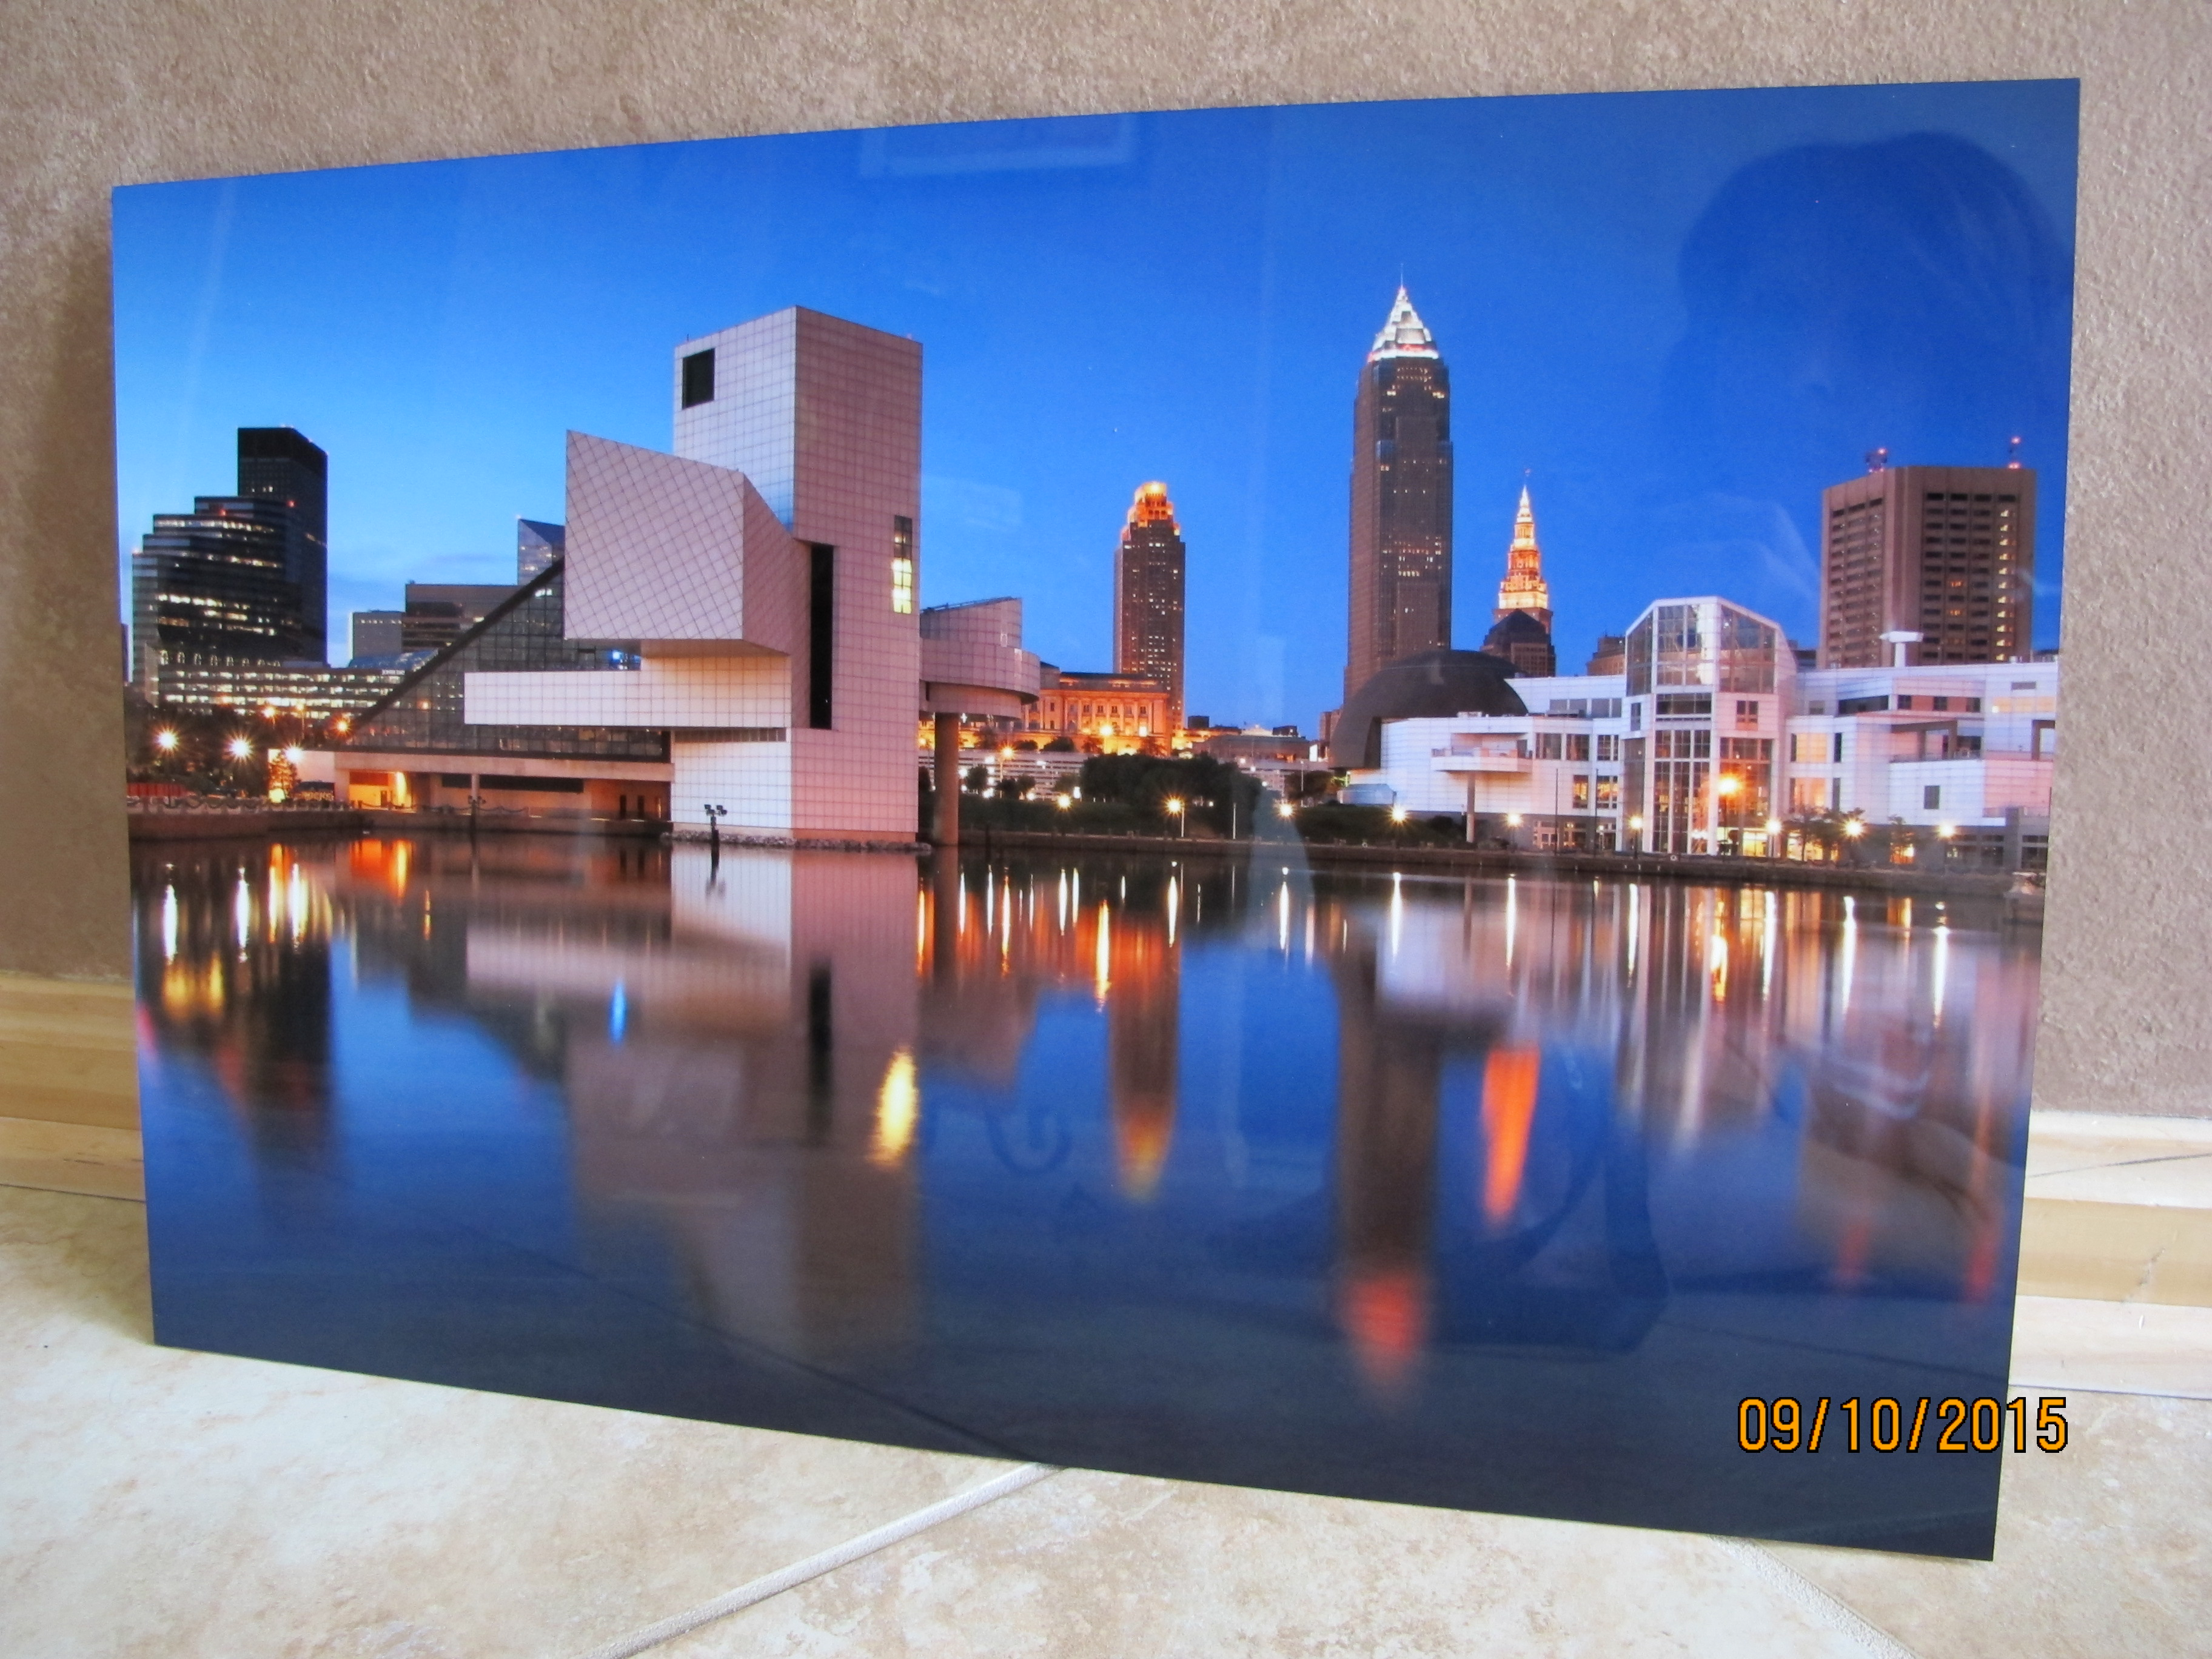 RAFFLE #15 Cleveland, OH Skyline Photograph on Aluminum Thank you to Todd Sechel Studio LLC, Amherst, for donating this beautiful item! •12 X 18 Photograph on Aluminum Value: $150 *Raffle open to local participants only due to prize size.